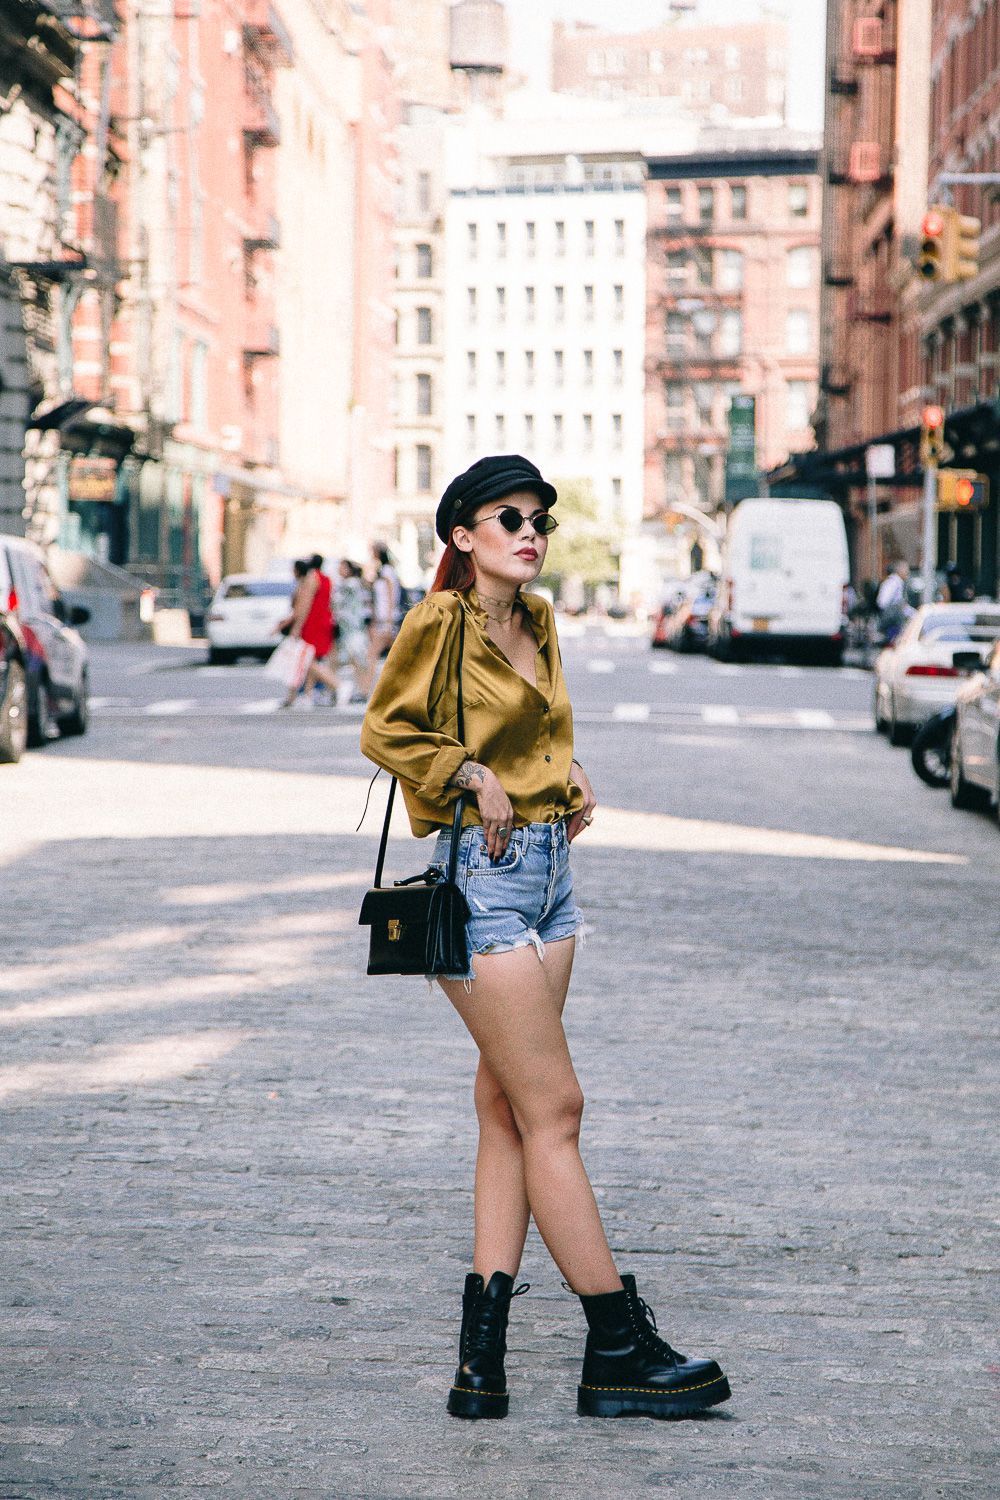 Lua wearing Public School mustard blouse and Jadon Dr Martens